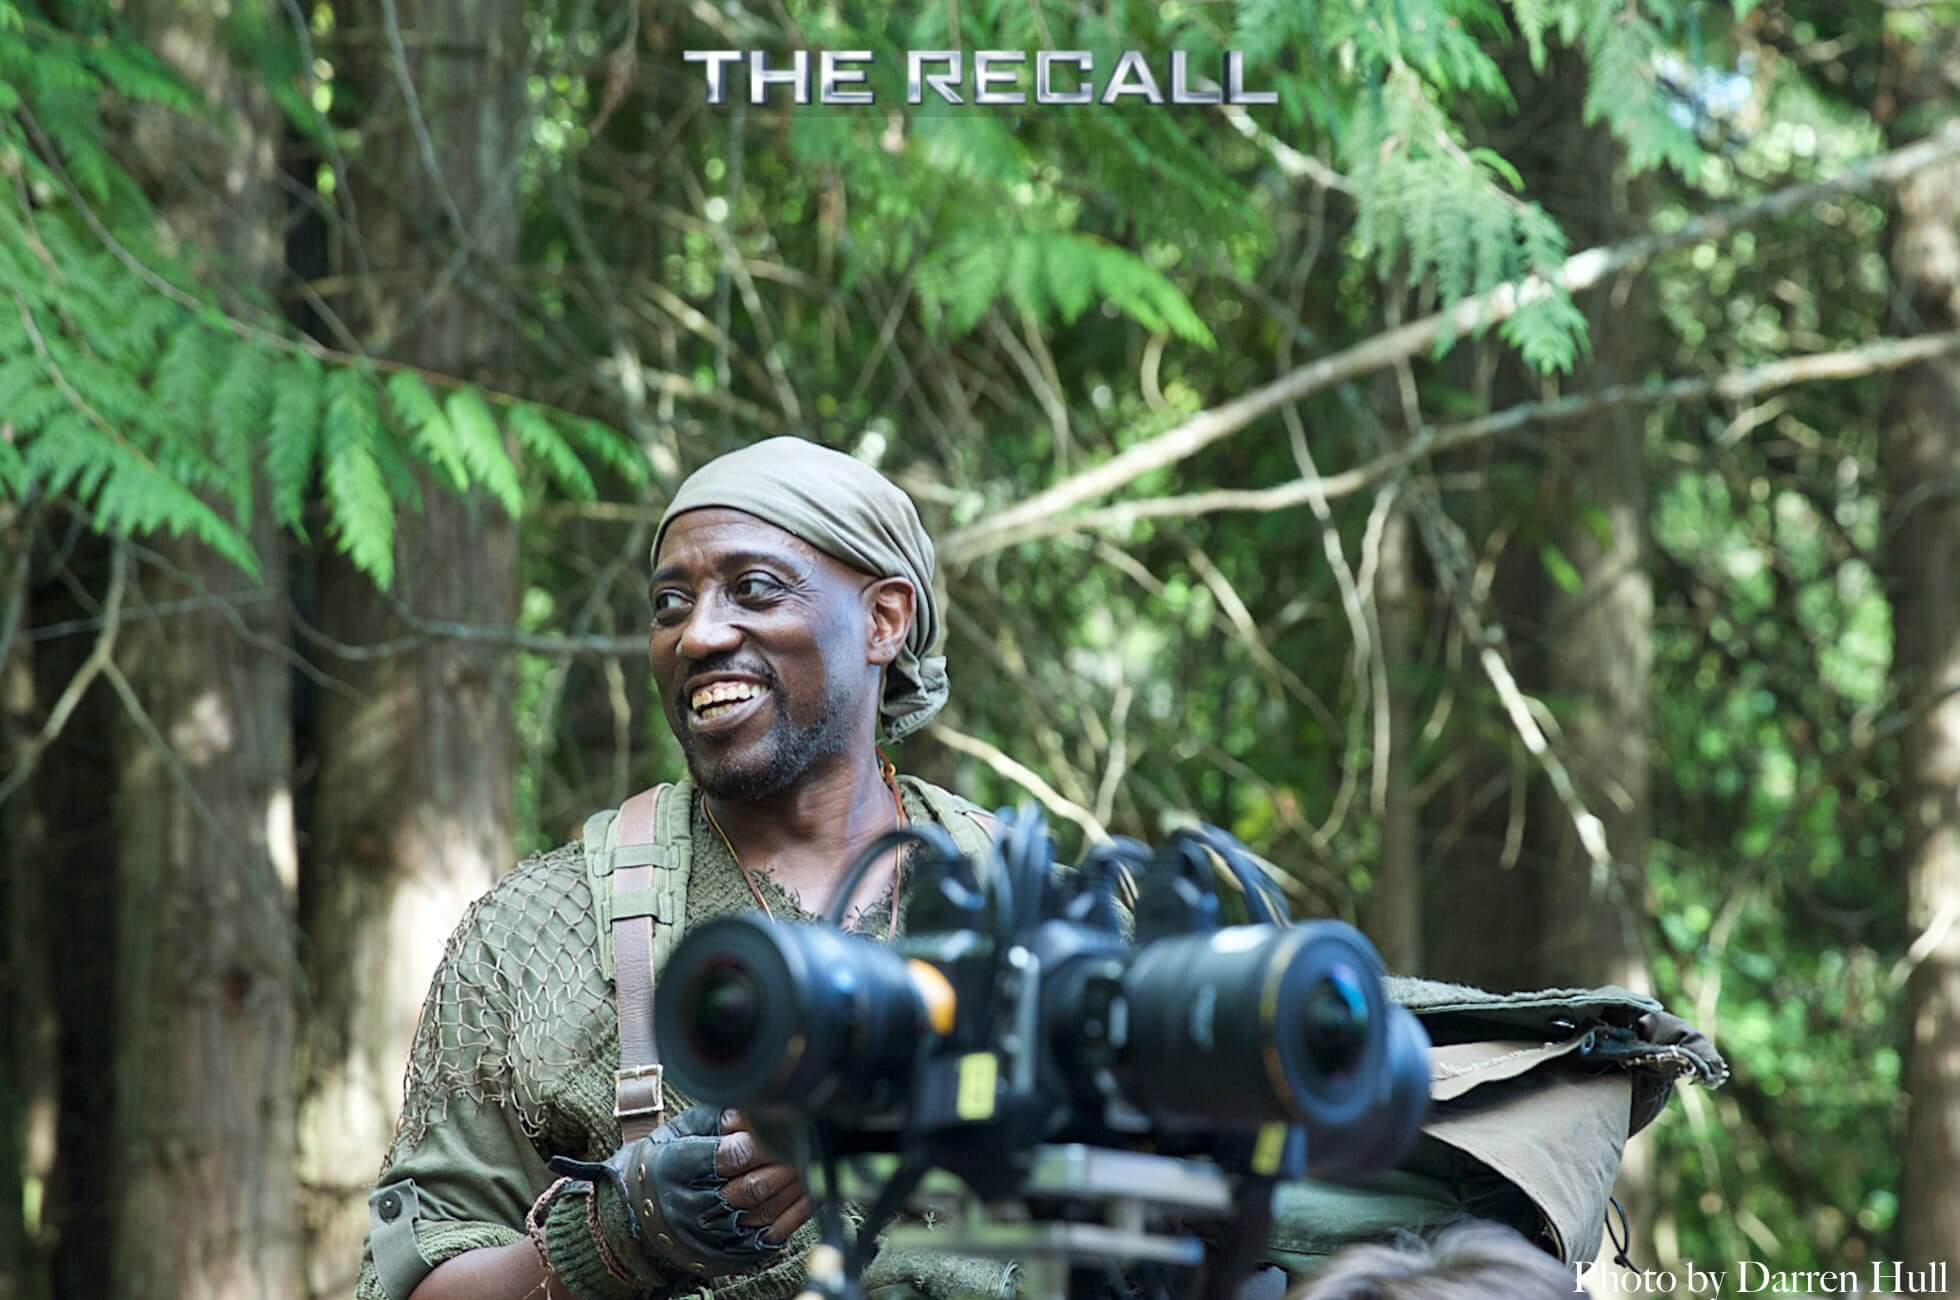 Wesley Snipes the recall abduction4 1 - Wesley Snipes Fights Aliens in The Recall VR Abduction